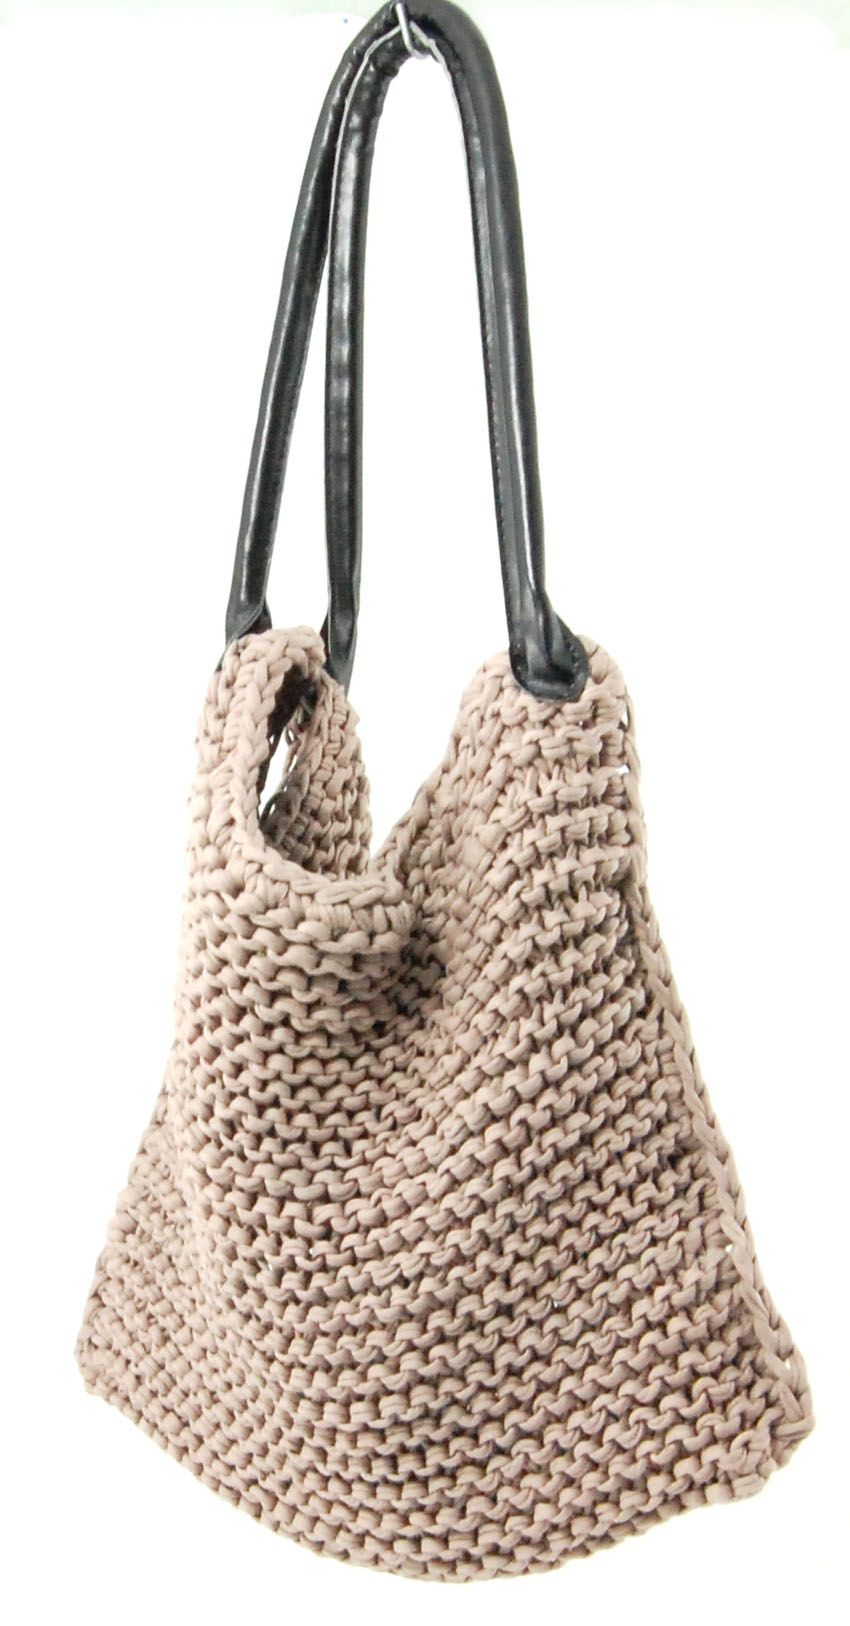 Knitted bag tutorial | Knitted bags, Purse strap and Tutorials